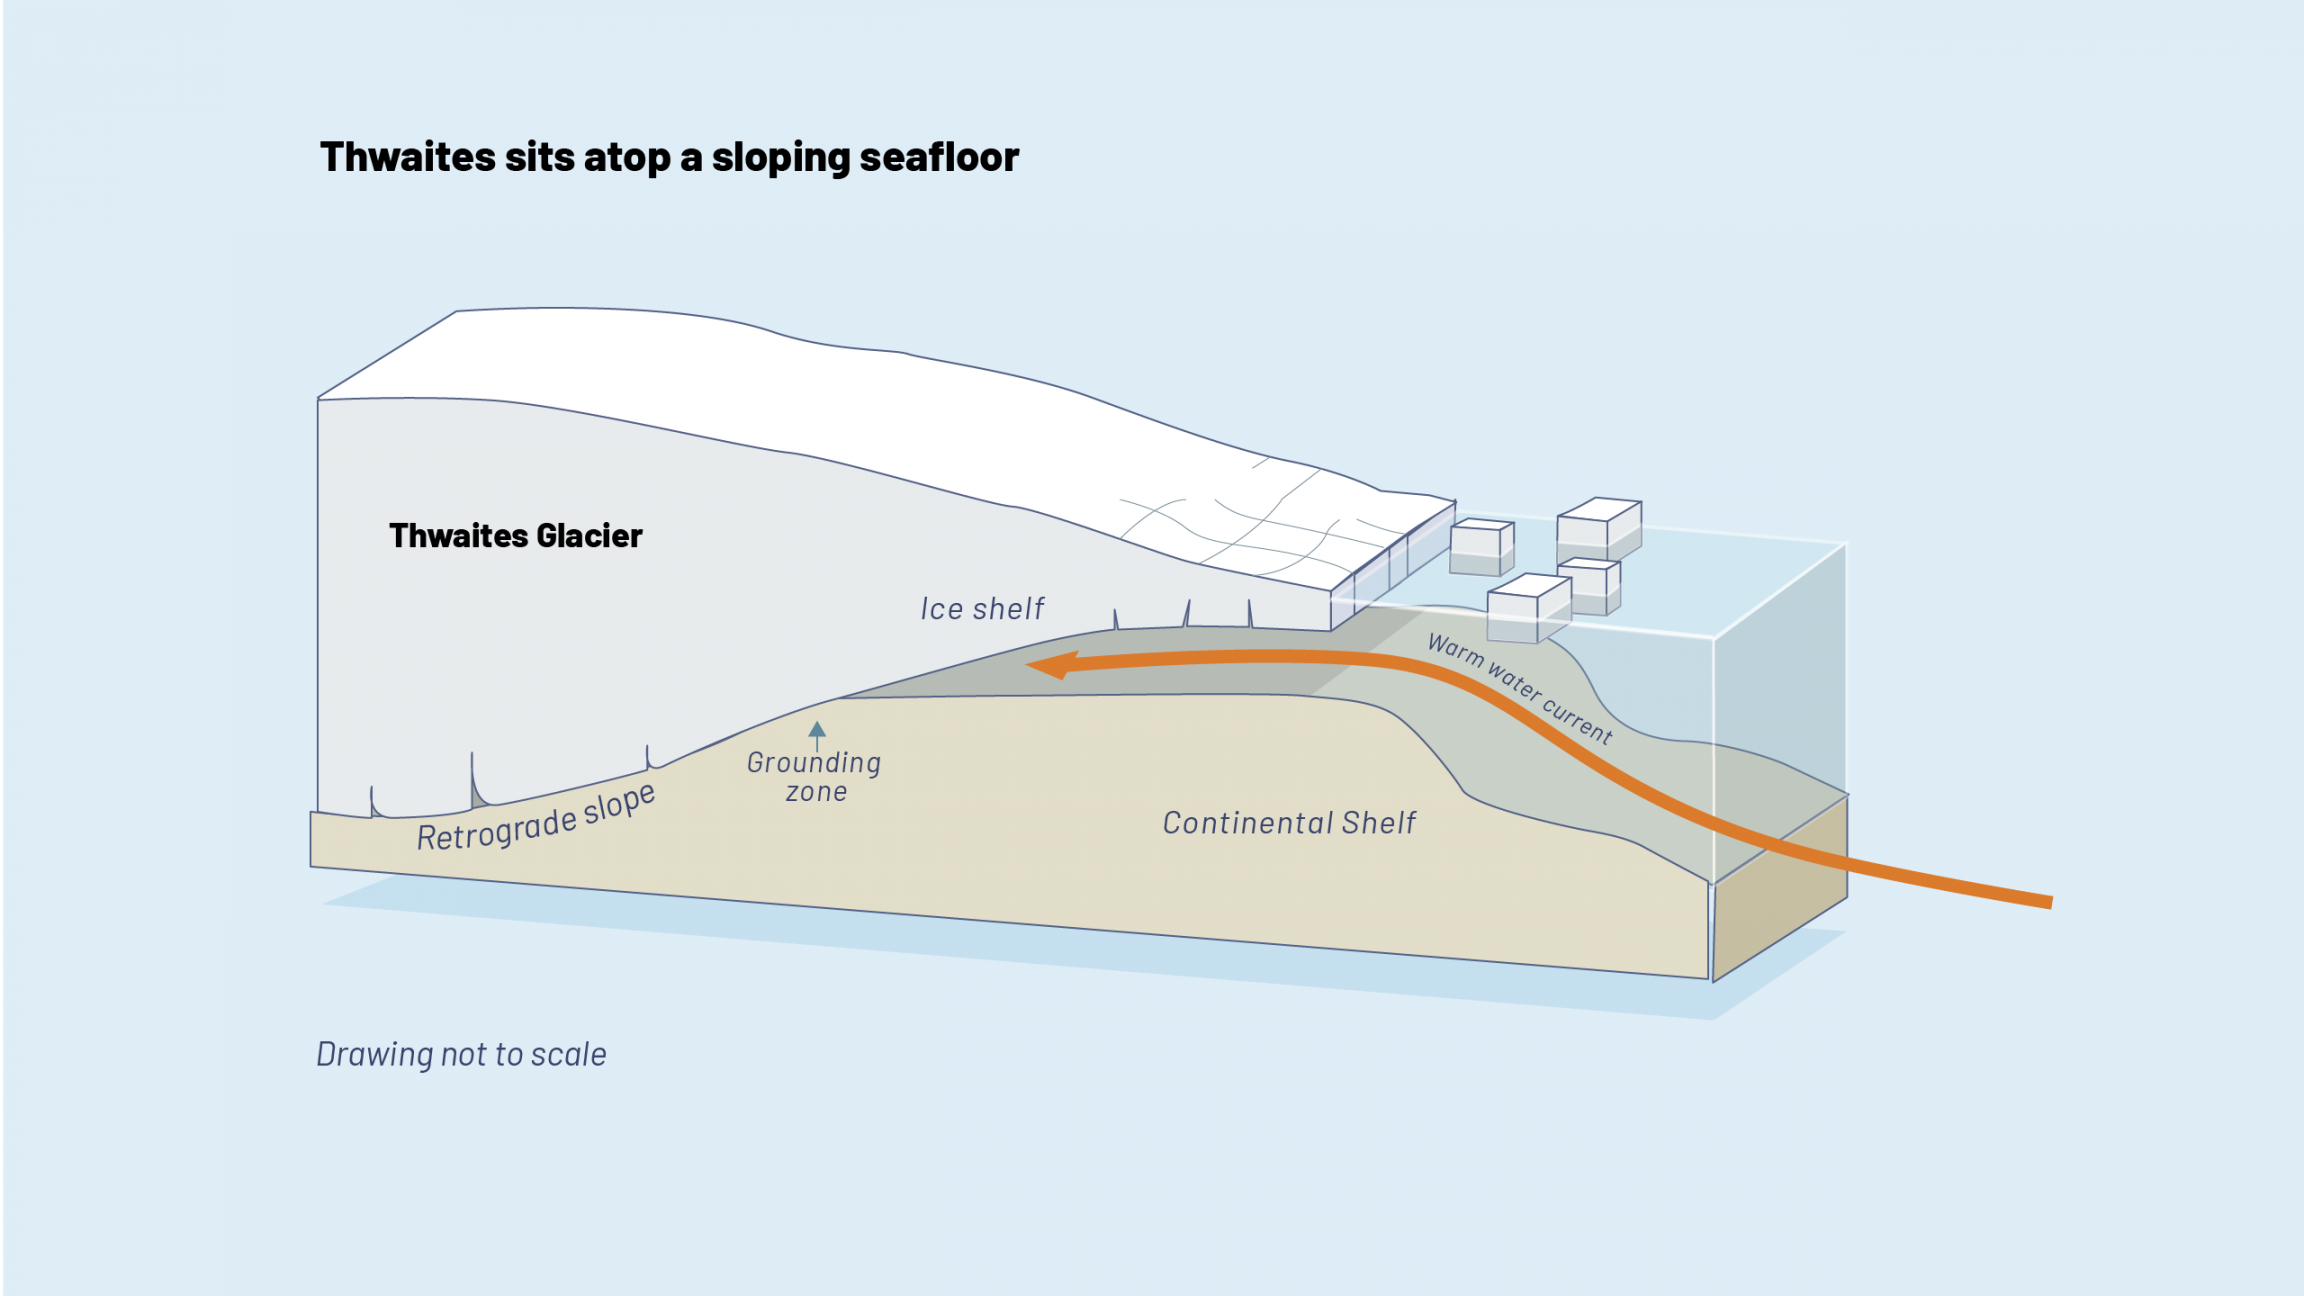 An illustration shows a sideview of Thwaites glacier, the grounding line and the retroglade slope